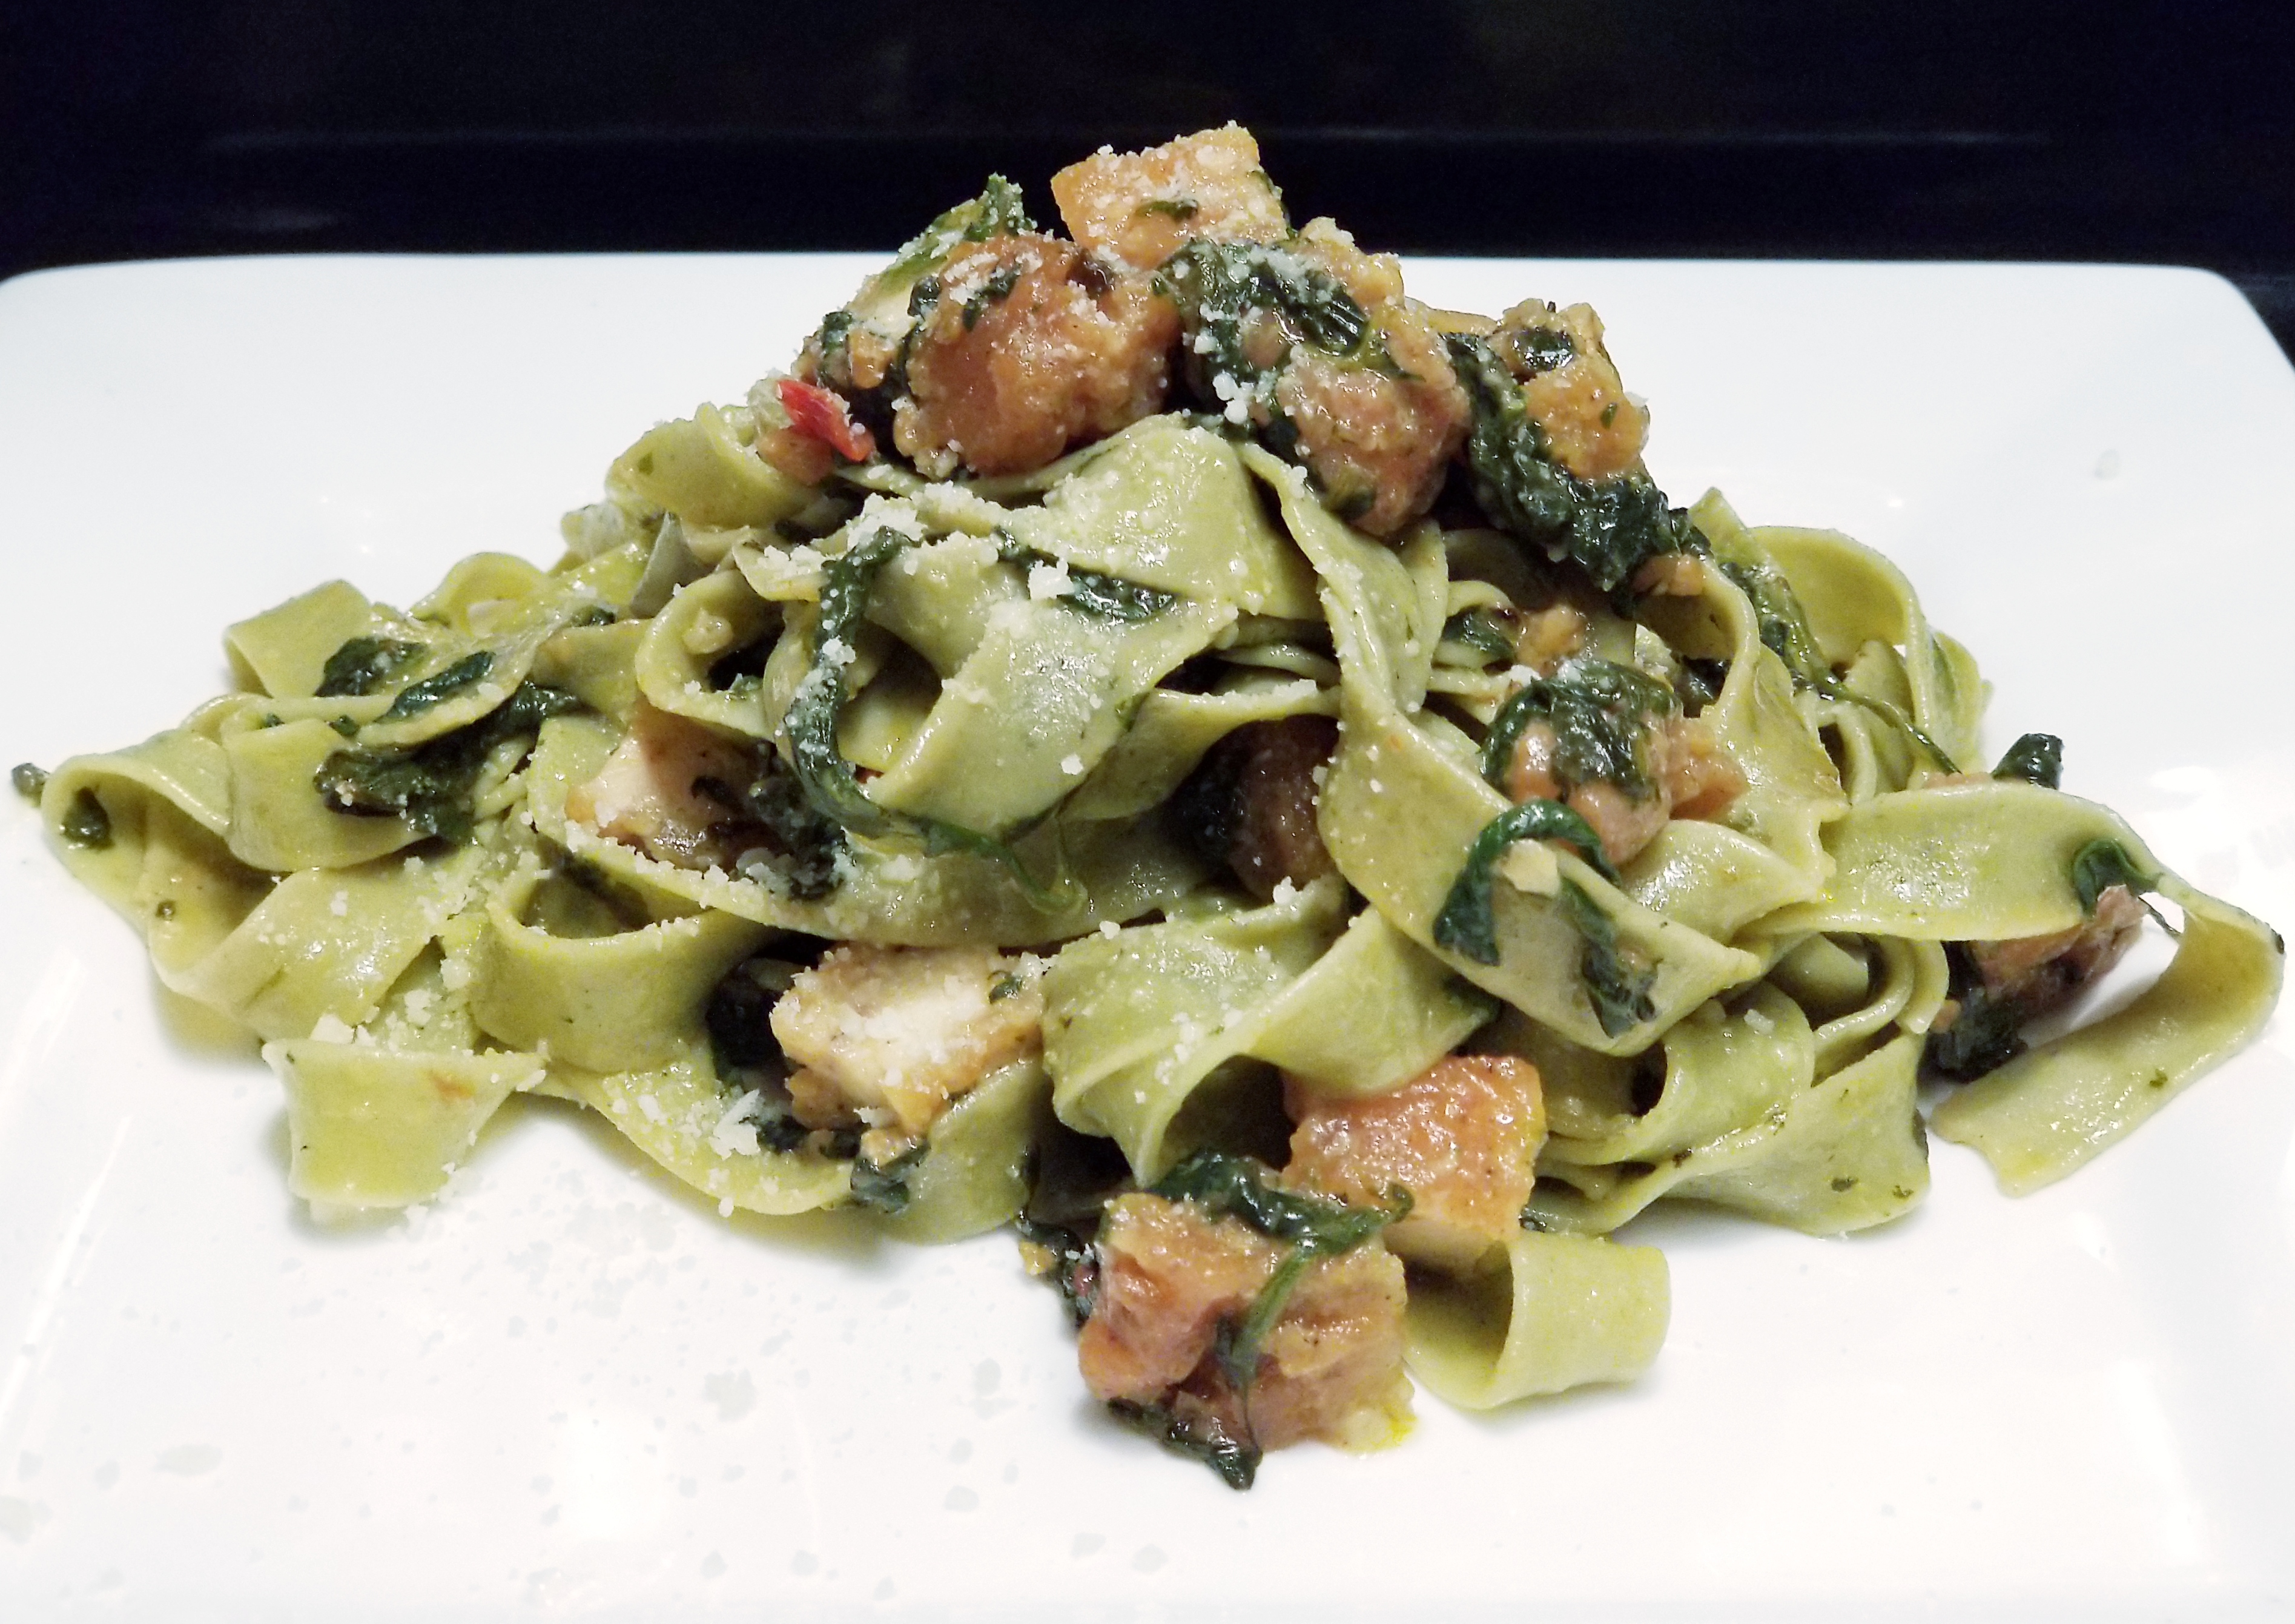 Organic kale and spinach fettuccine with chicken Parmesan